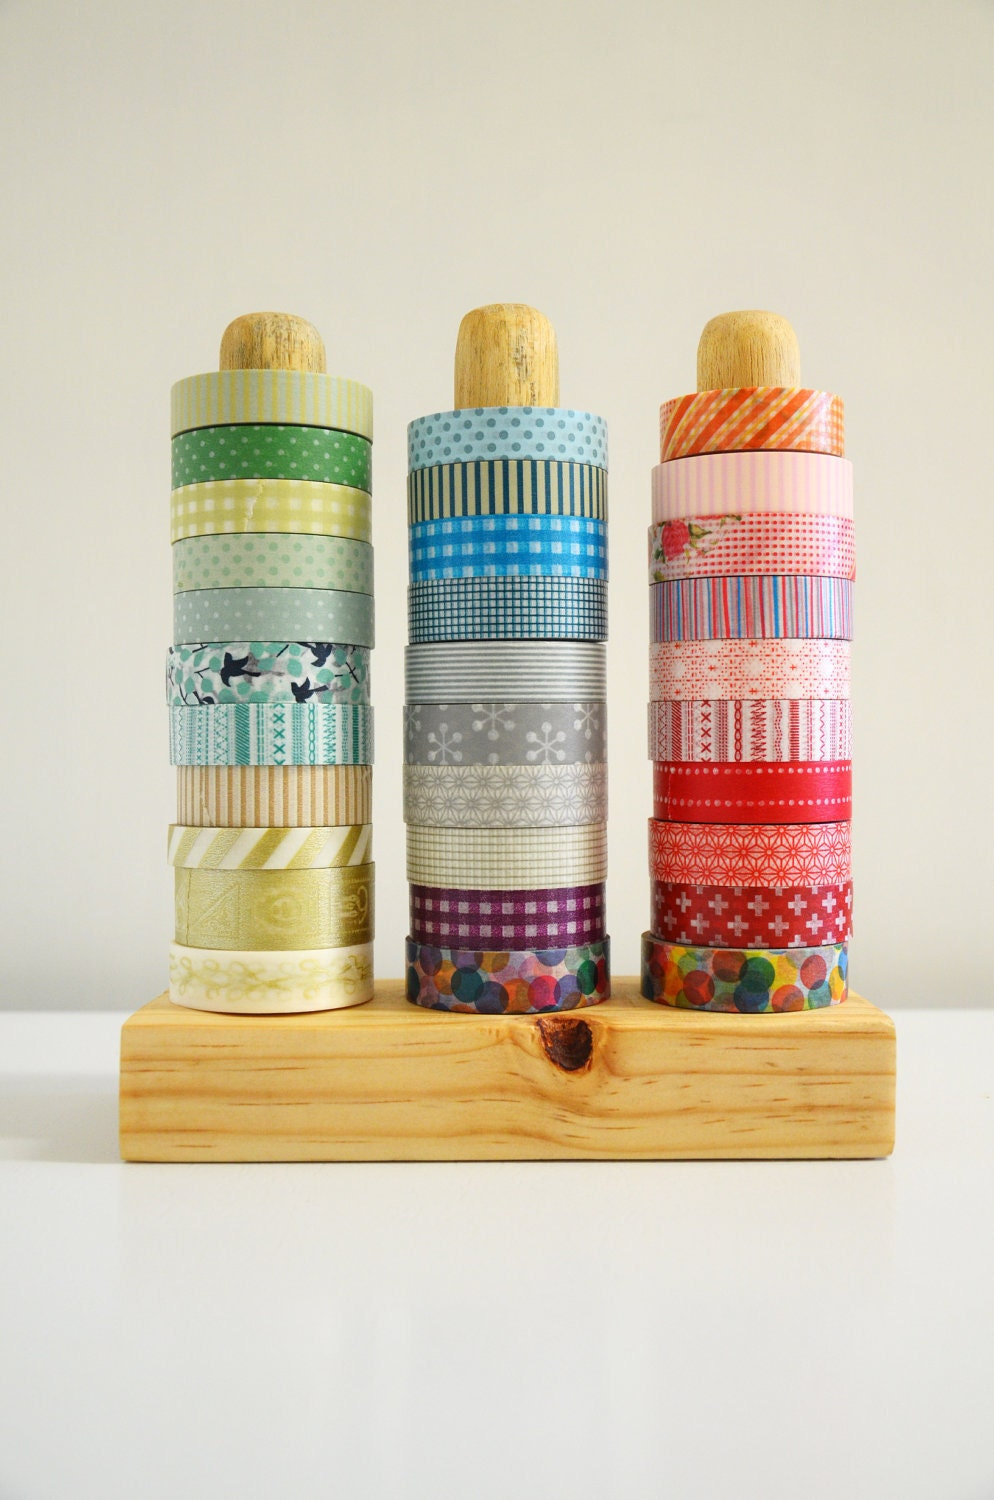 Washi Tape Organizer - Wood Masking Tape Holder - Eco friendly Japanese Tape Dispenser for 30 rolls - coworkers gift